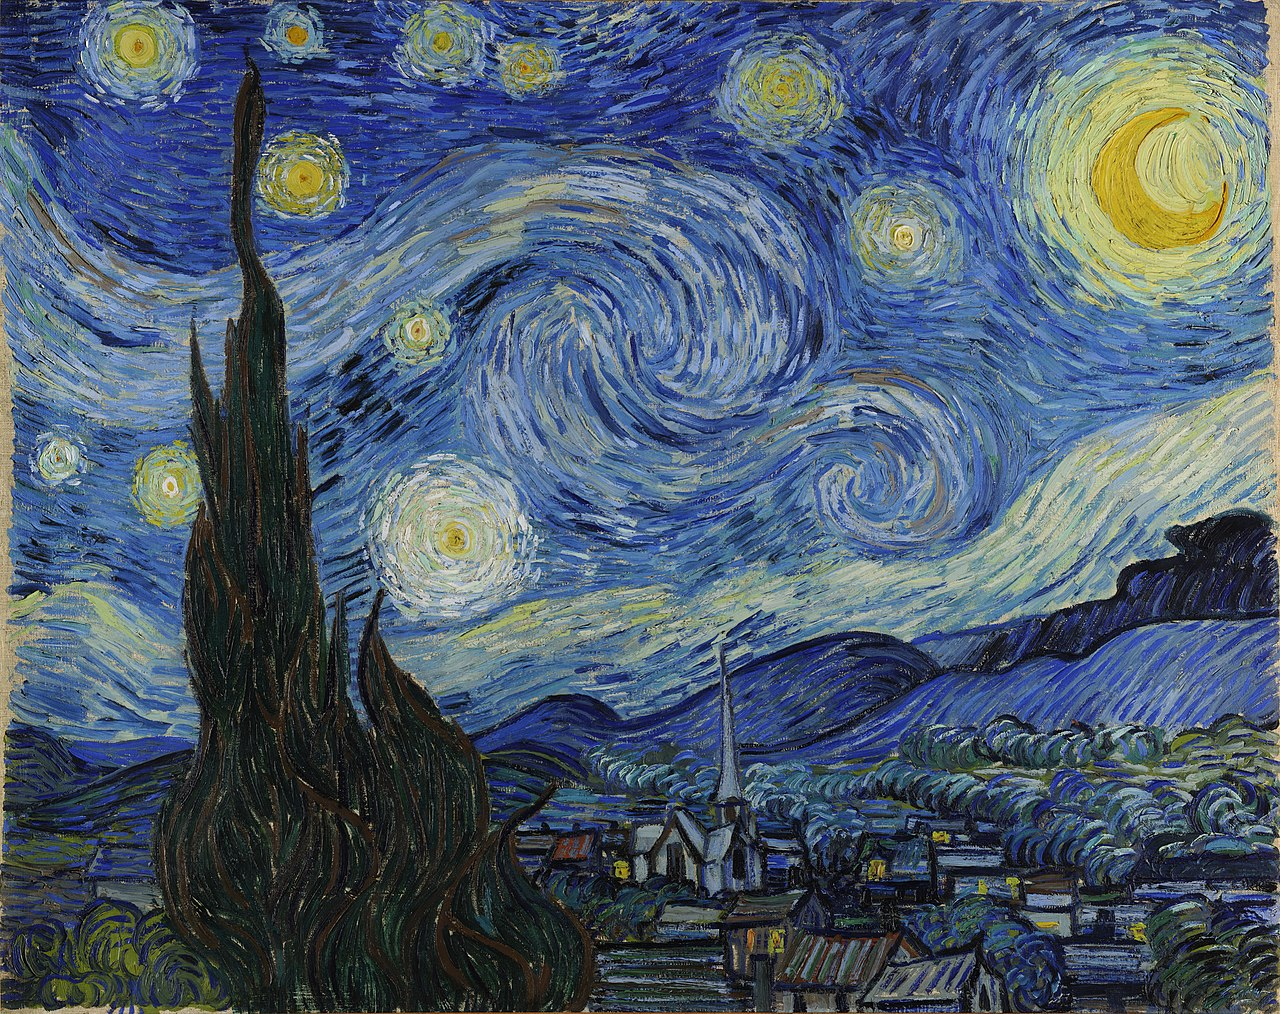 http://upload.wikimedia.org/wikipedia/commons/thumb/e/ea/Van_Gogh_-_Starry_Night_-_Google_Art_Project.jpg/1280px-Van_Gogh_-_Starry_Night_-_Google_Art_Project.jpg